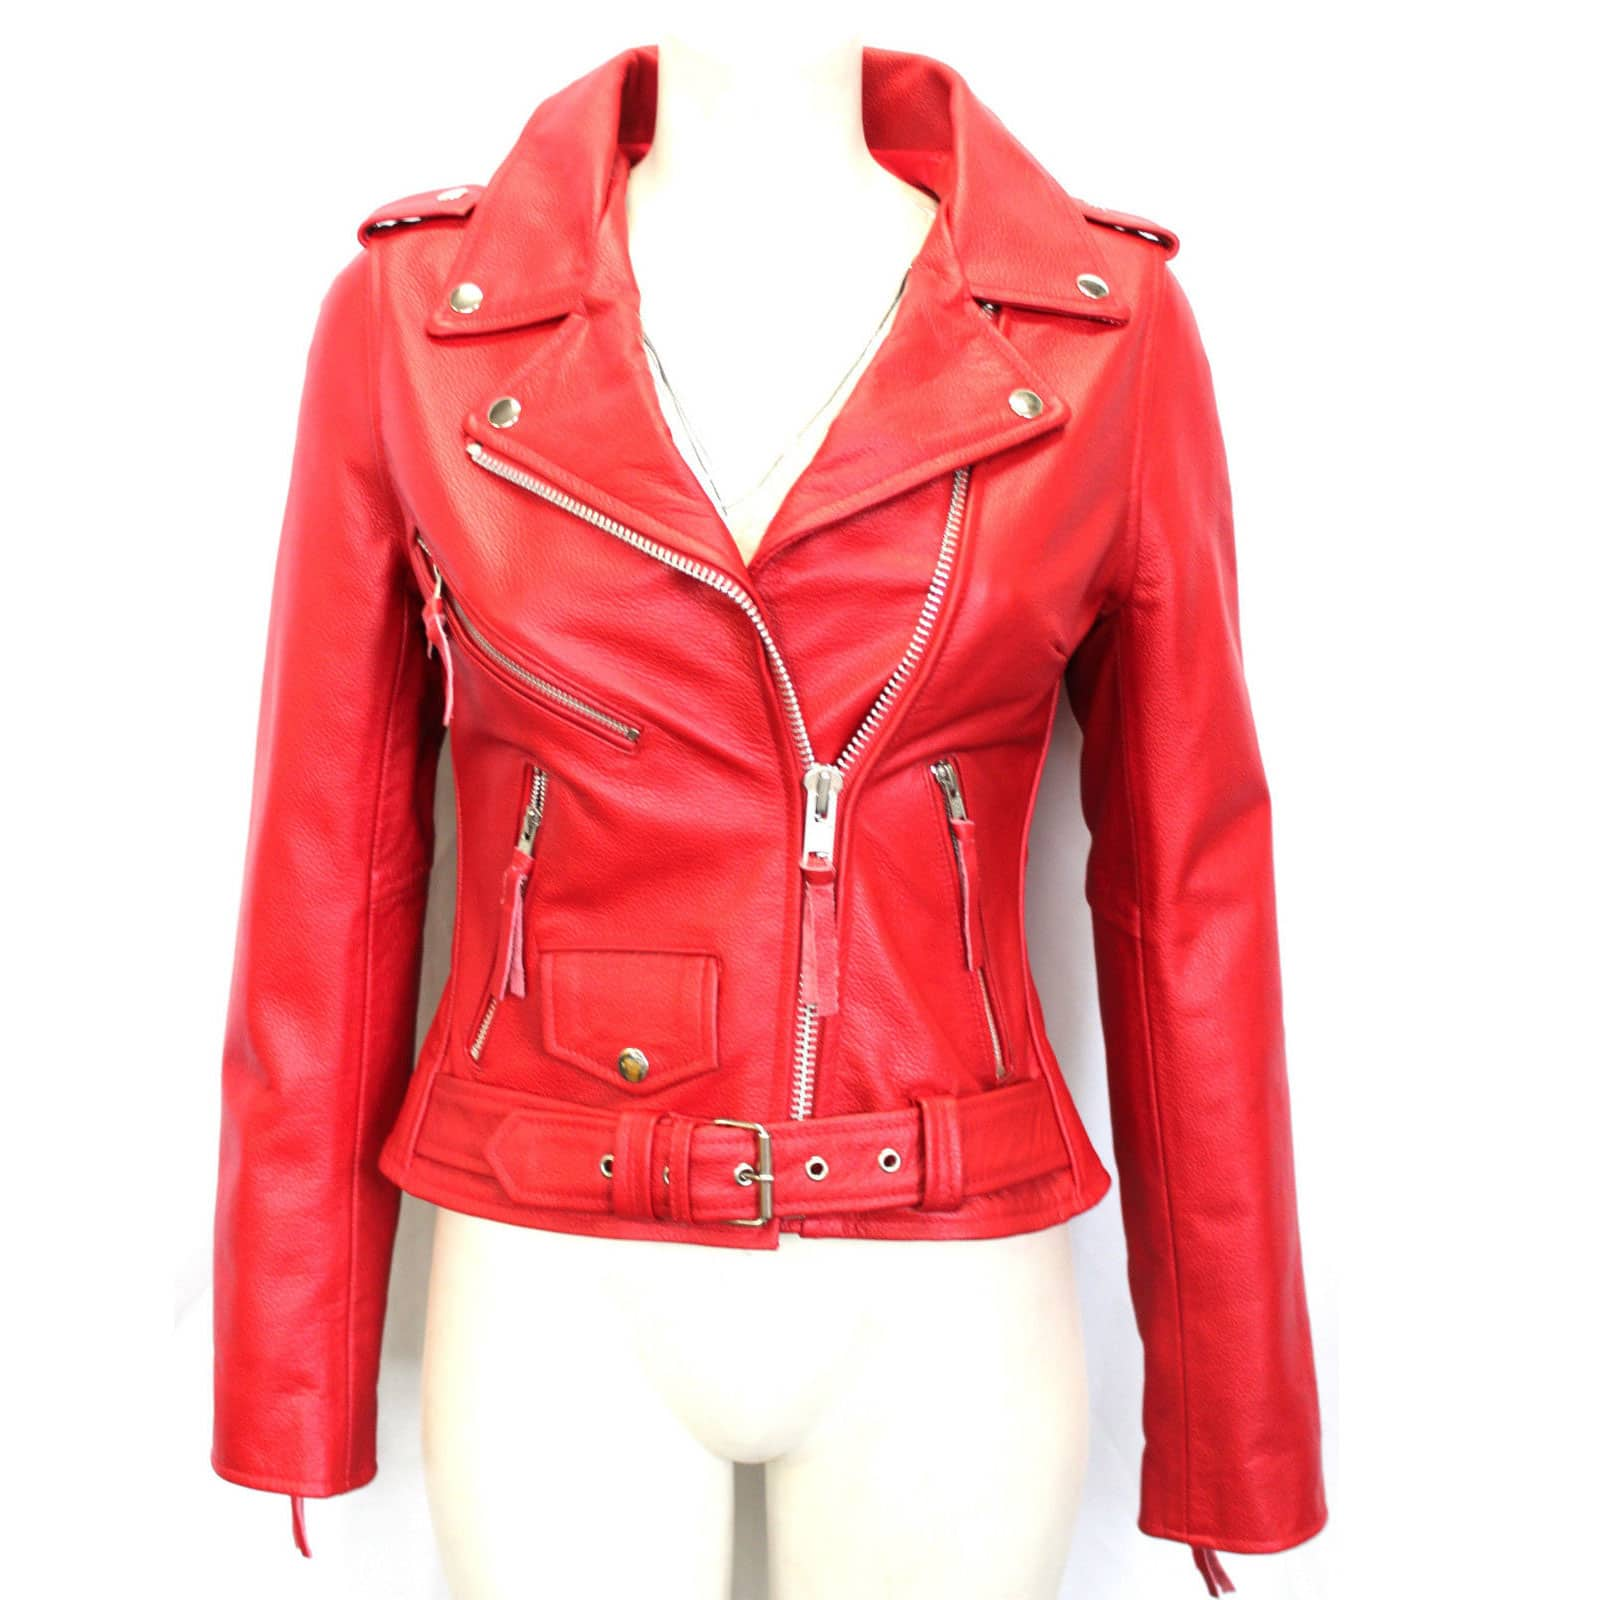 Brando Biker Style Red Leather Jacket for Women - Custom Made